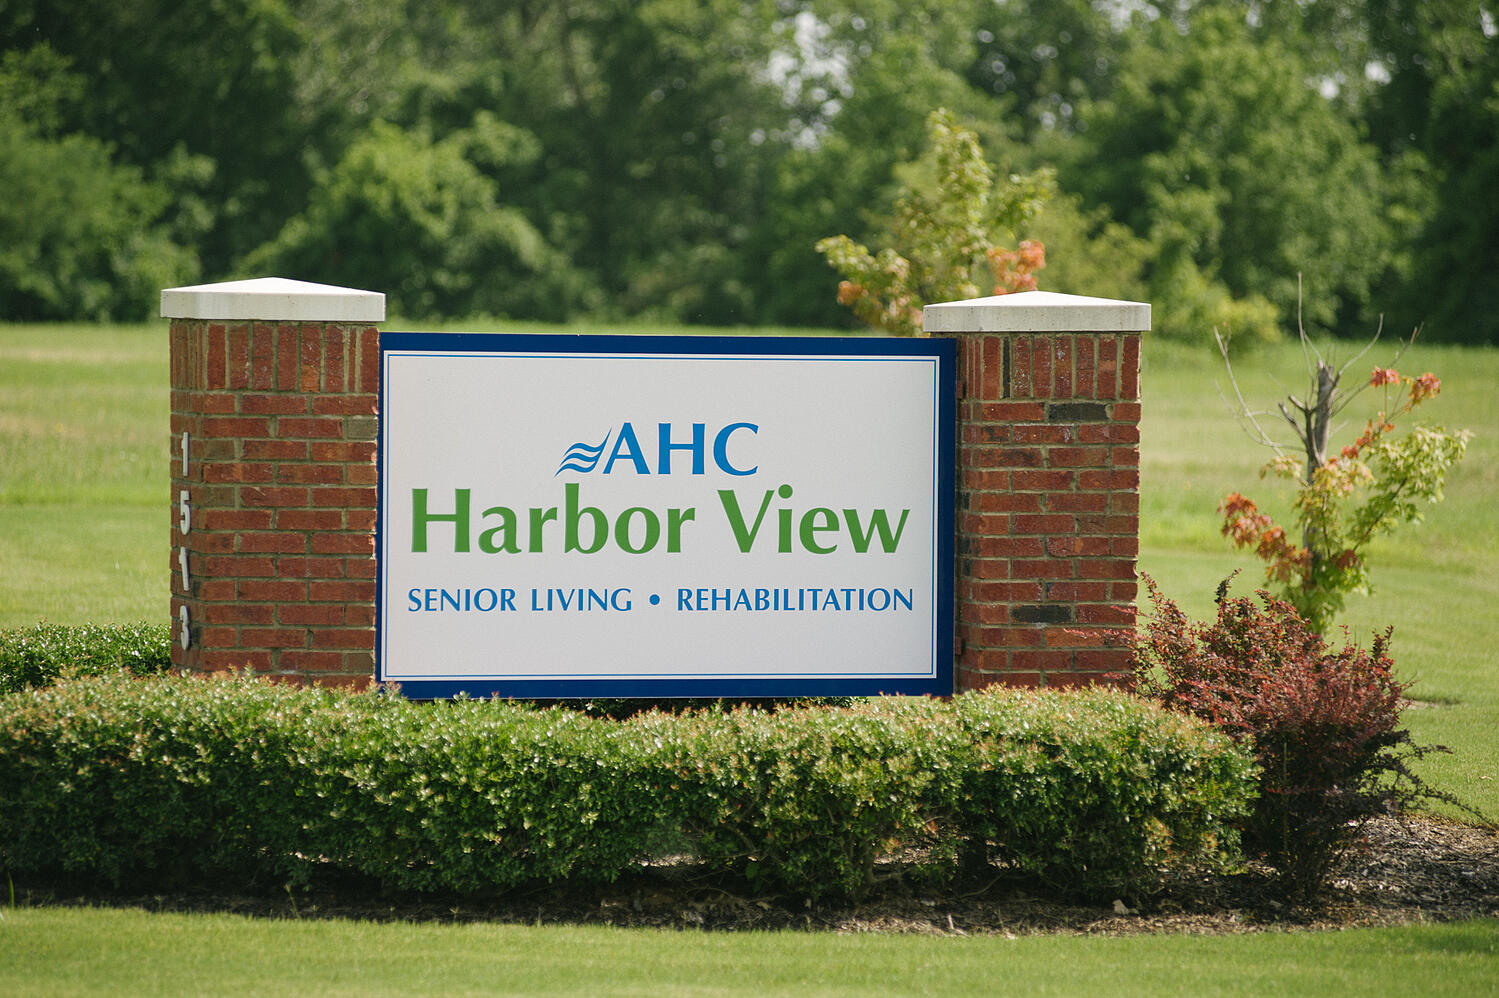 AHC Harbor View Senior Living Sign with clear view plantings